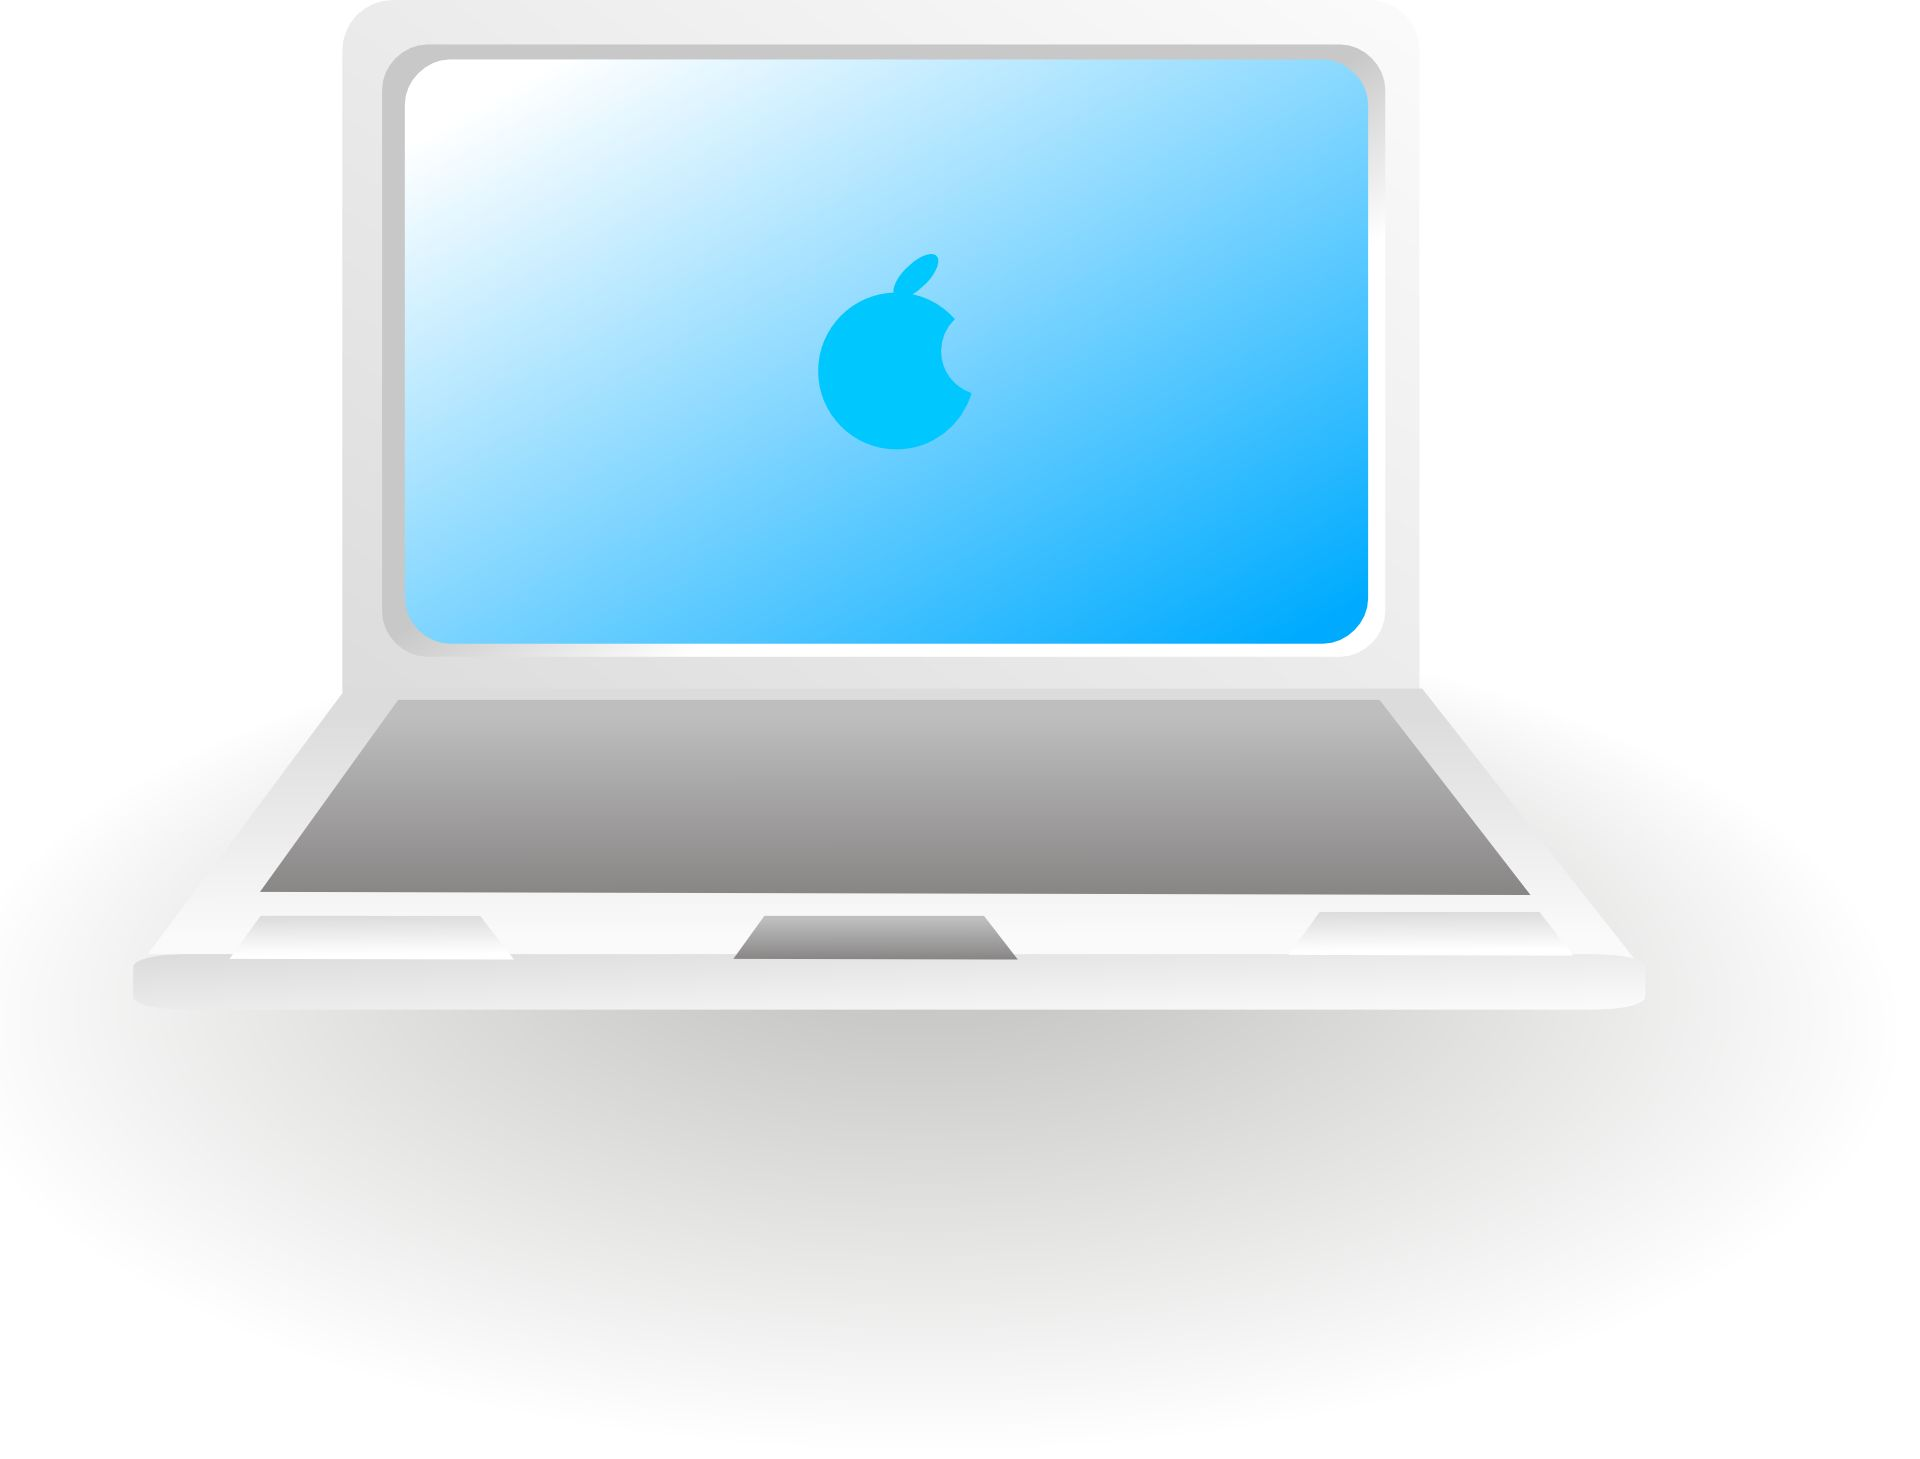 Apple Laptop Apple Laptop Computer Clip Art Apple Computer